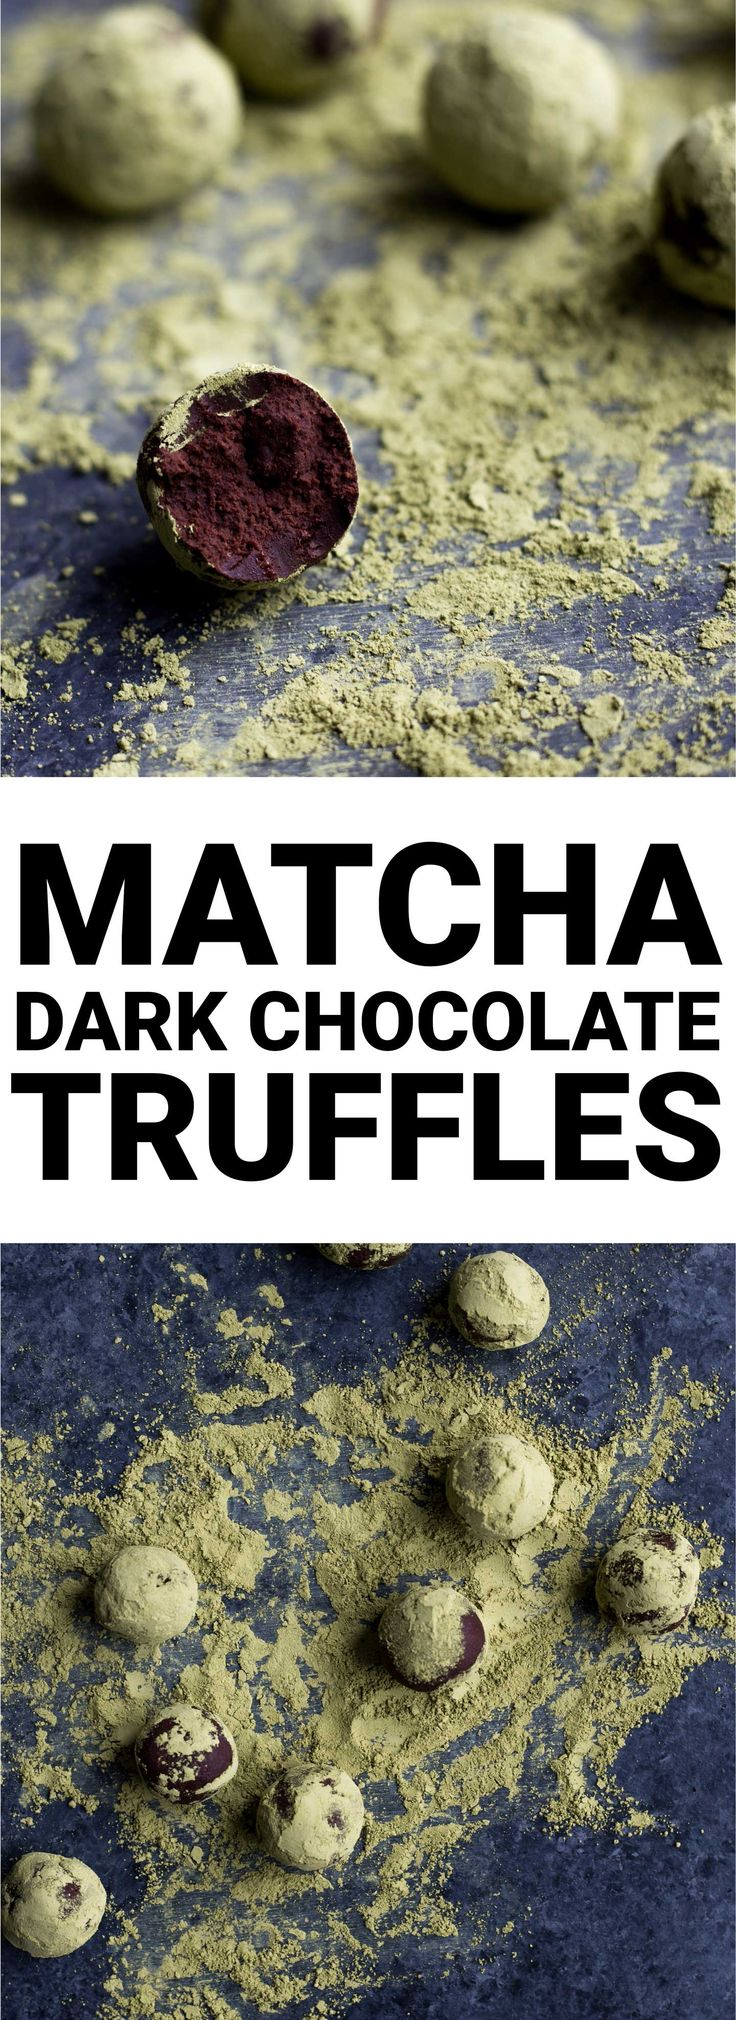 Vegan Matcha Dark Chocolate Truffles: The richest truffles ever! Made with only four ingredients, and they're naturally gluten free and vegan. Perfect for St. Patrick's Day or any day a sweets craving strikes! || fooduzzi.com recipe